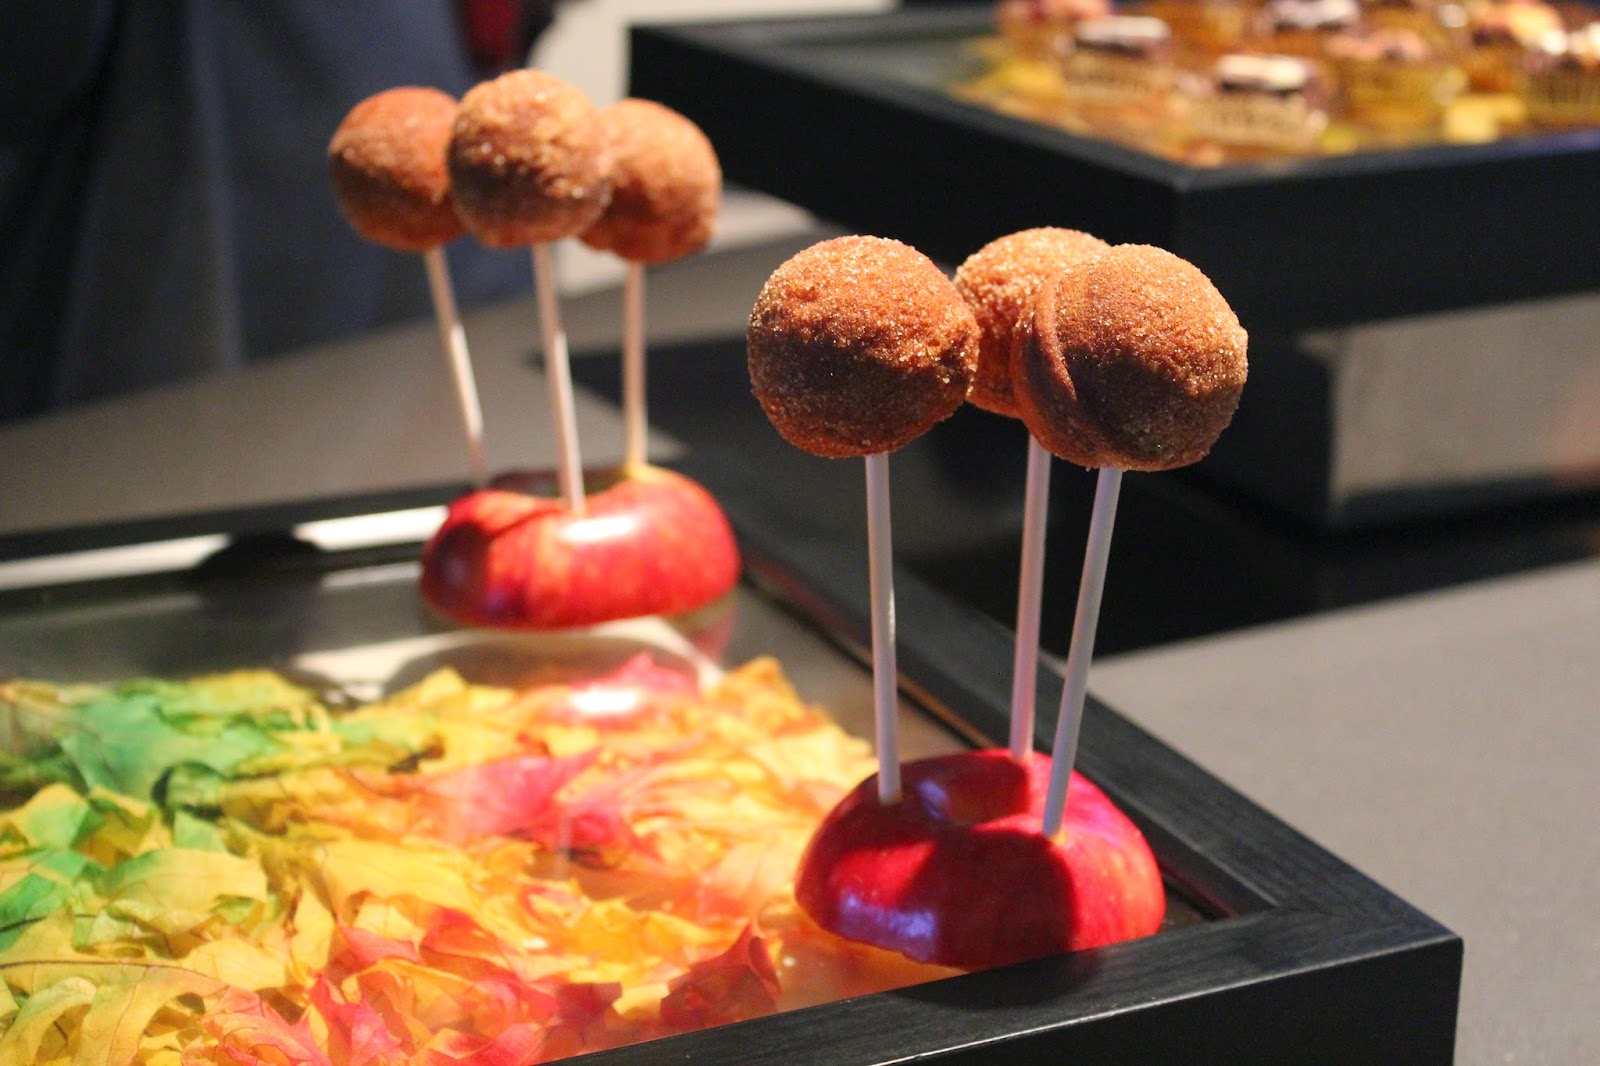 Apple cider doughnut pops at Studio at the Royal Sonesta Boston